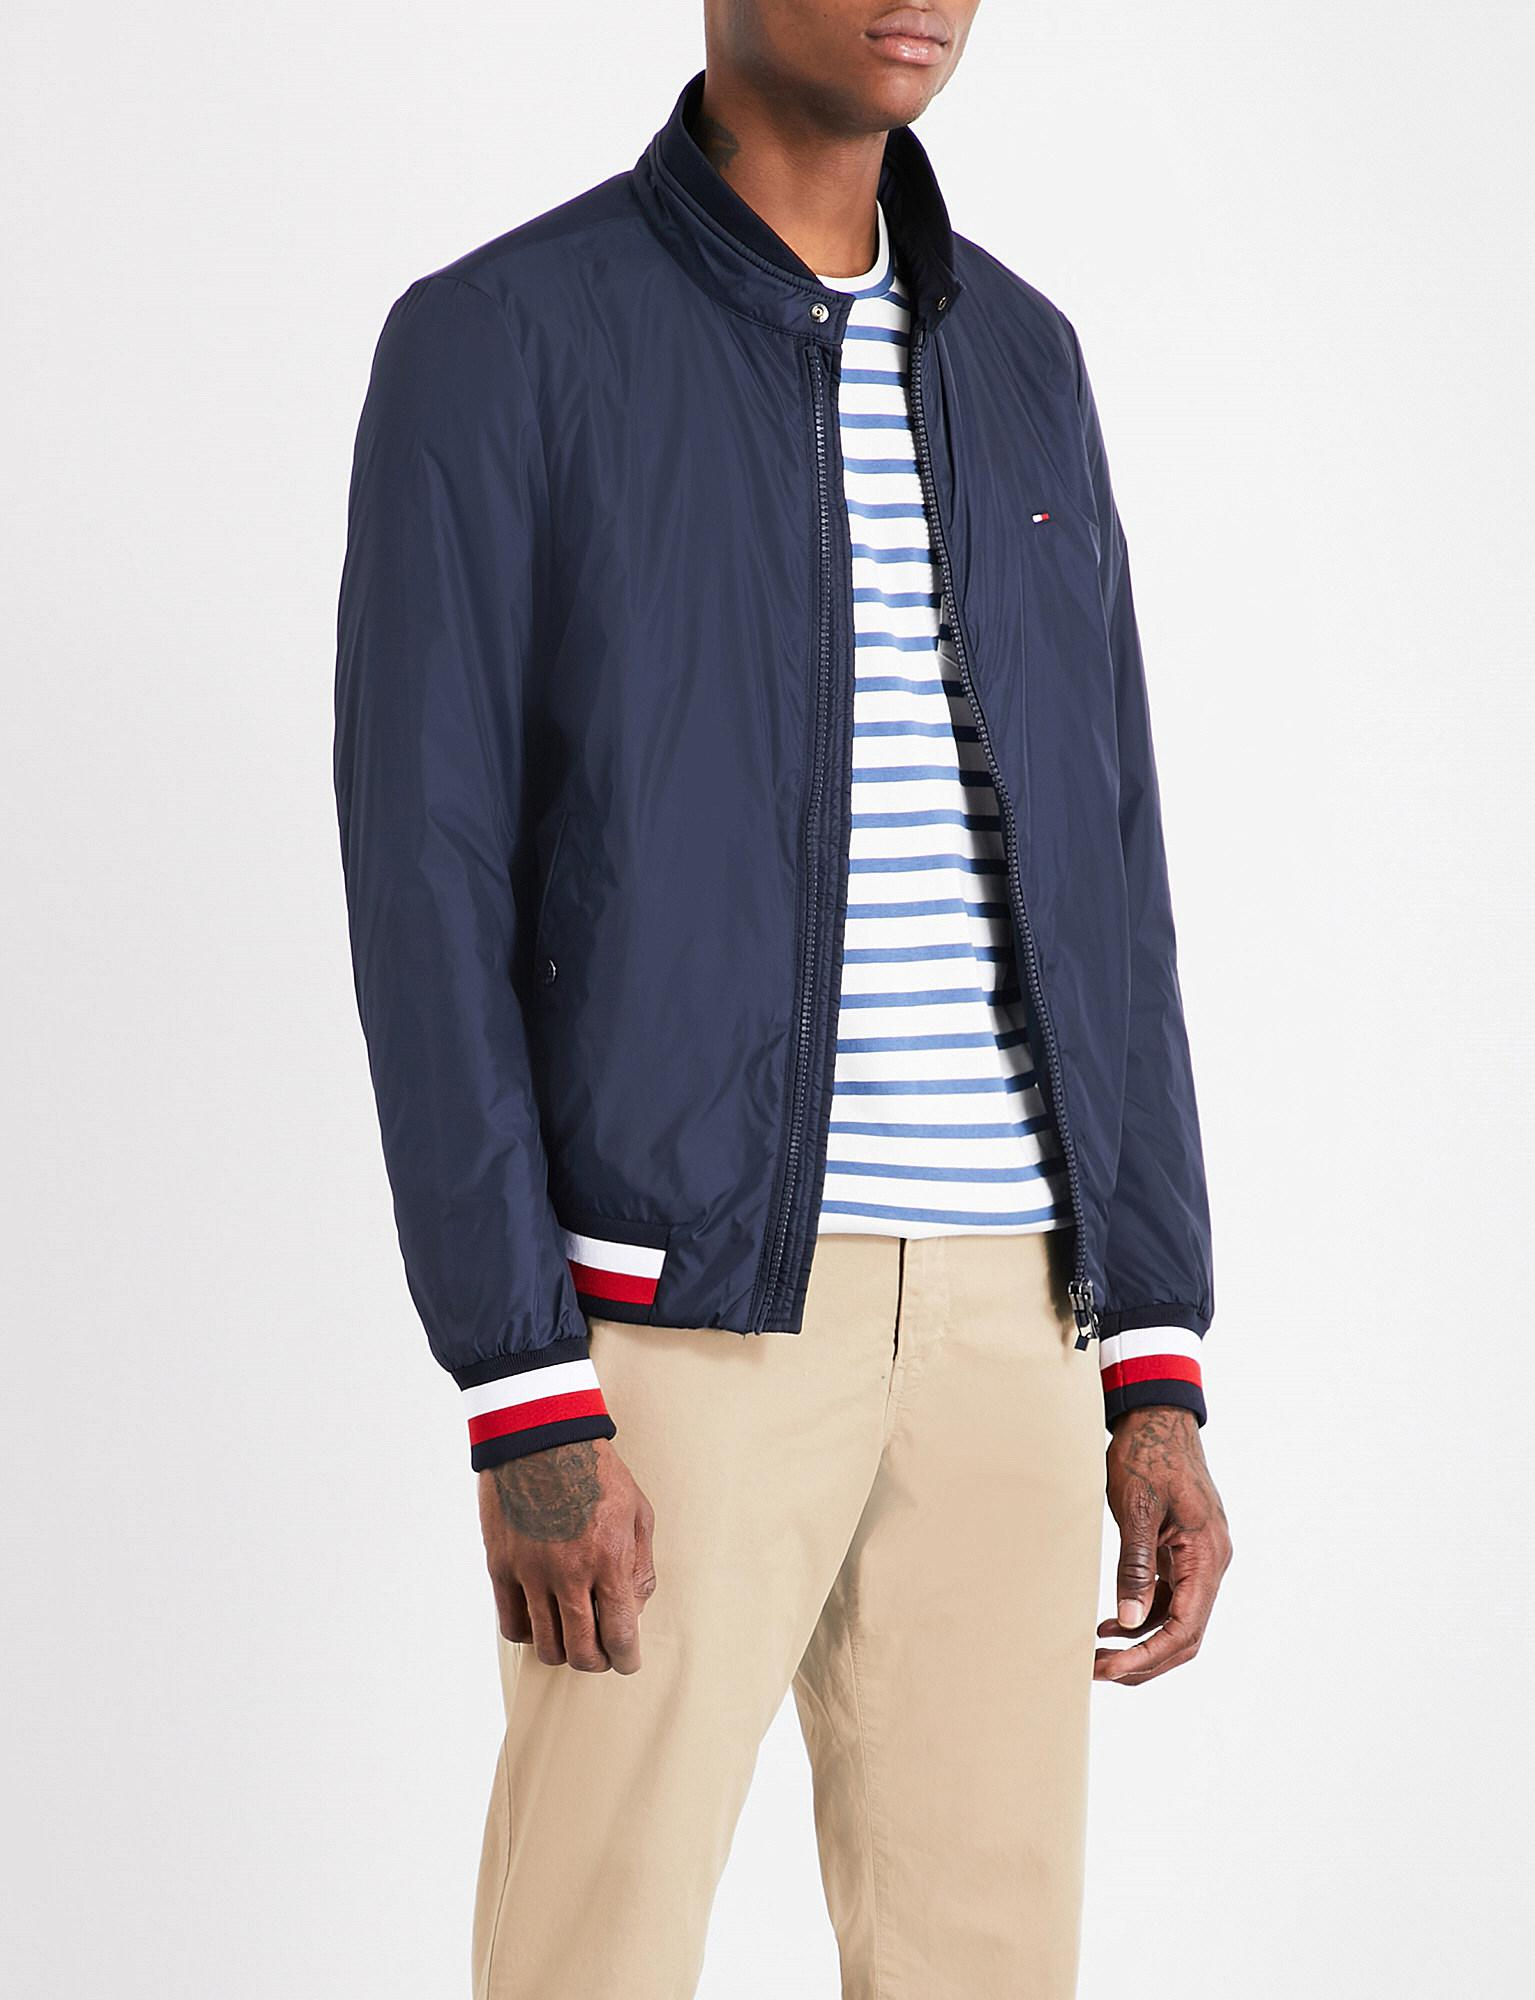 288f25e9 Gallery. Previously sold at: Selfridges · Men's Bomber Jackets ...